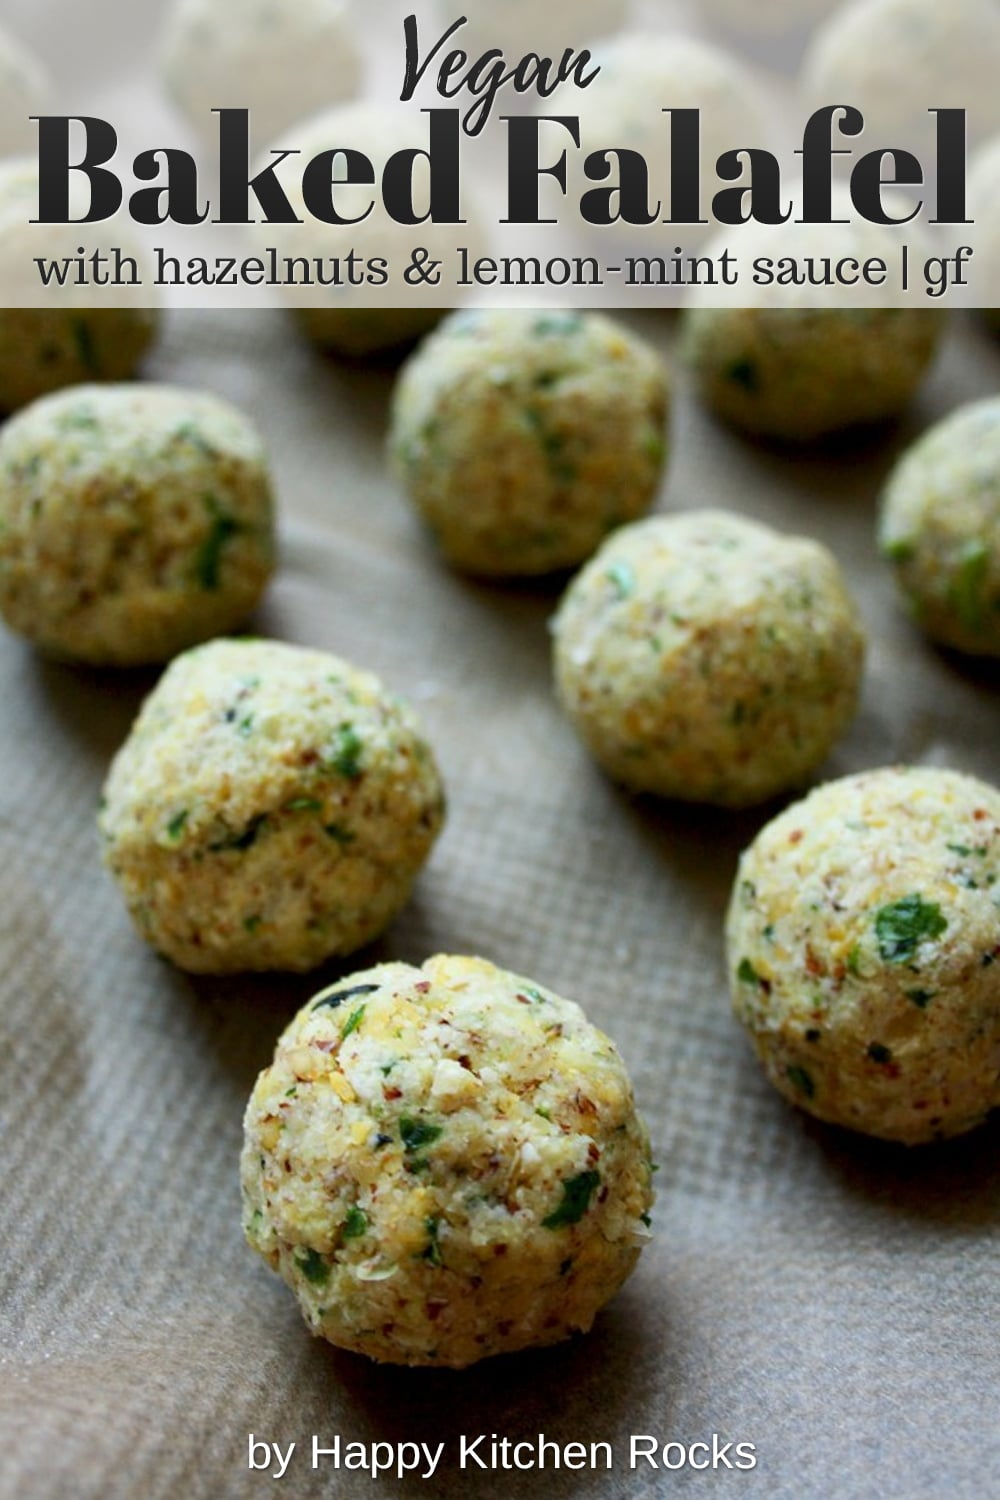 Crispy Baked Falafel with Hazelnuts and Creamy Lemon-Mint Sauce Collage with Text Overlay